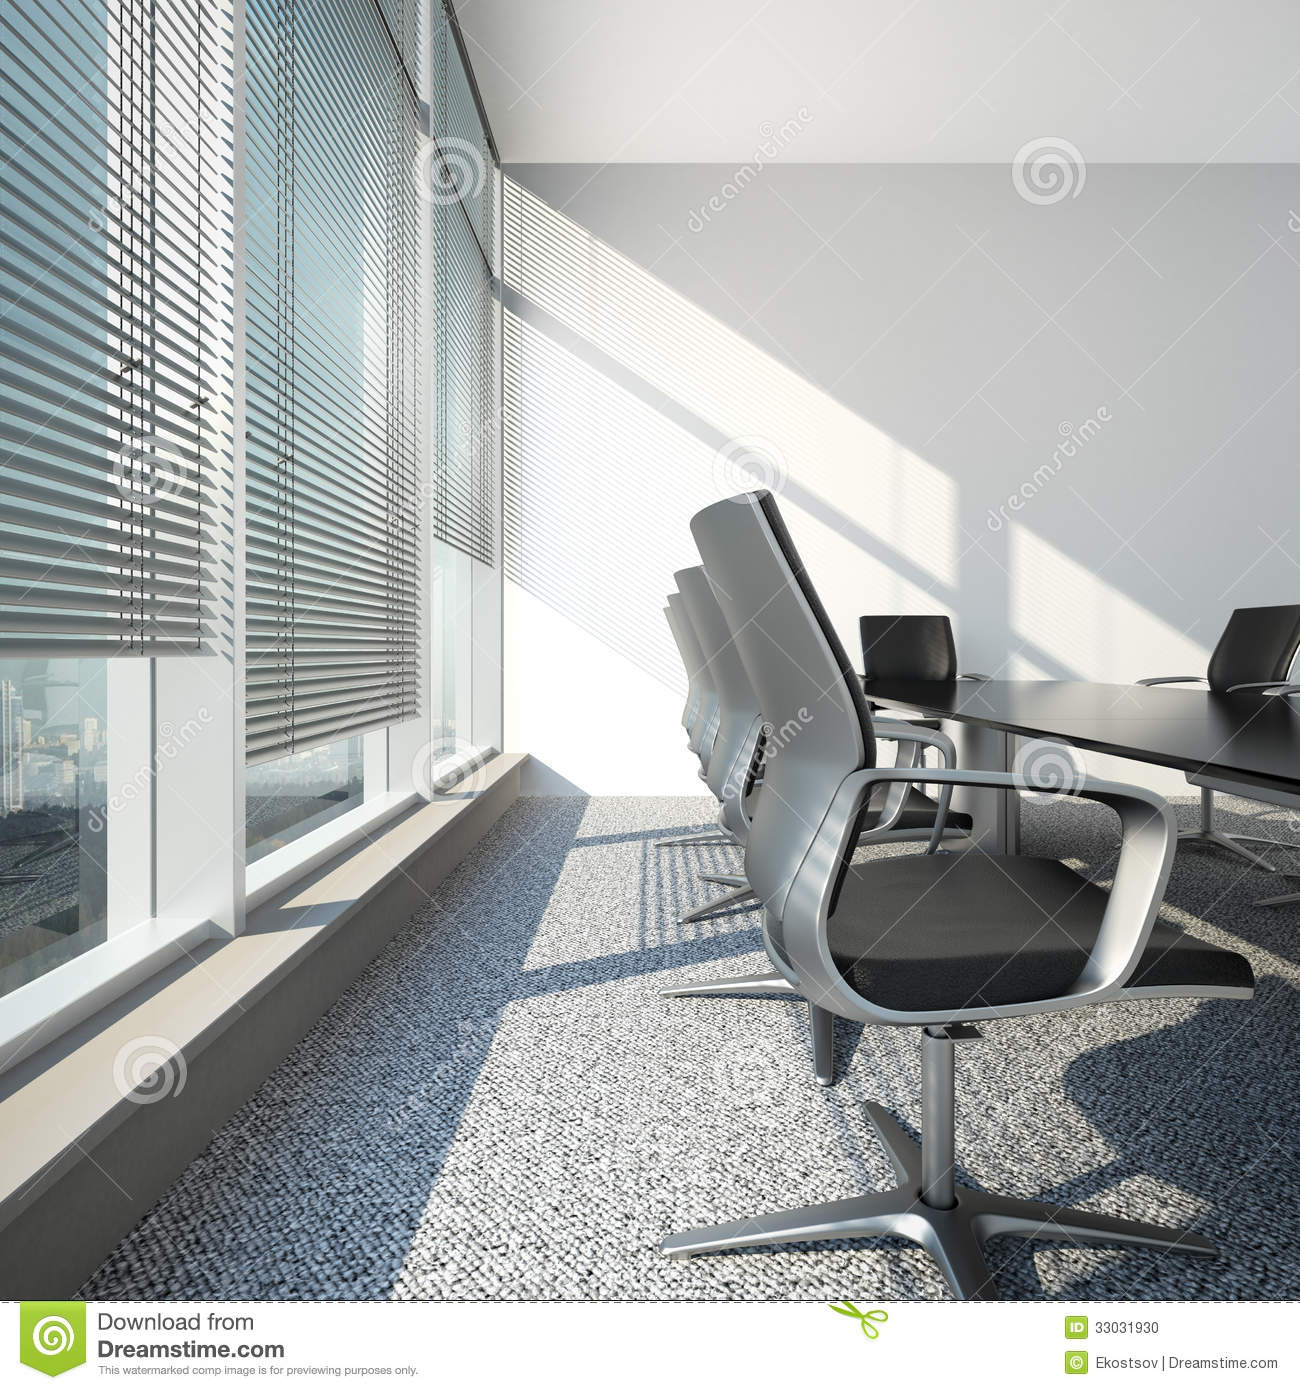 uk window bigstock in the slough commercial office blinds